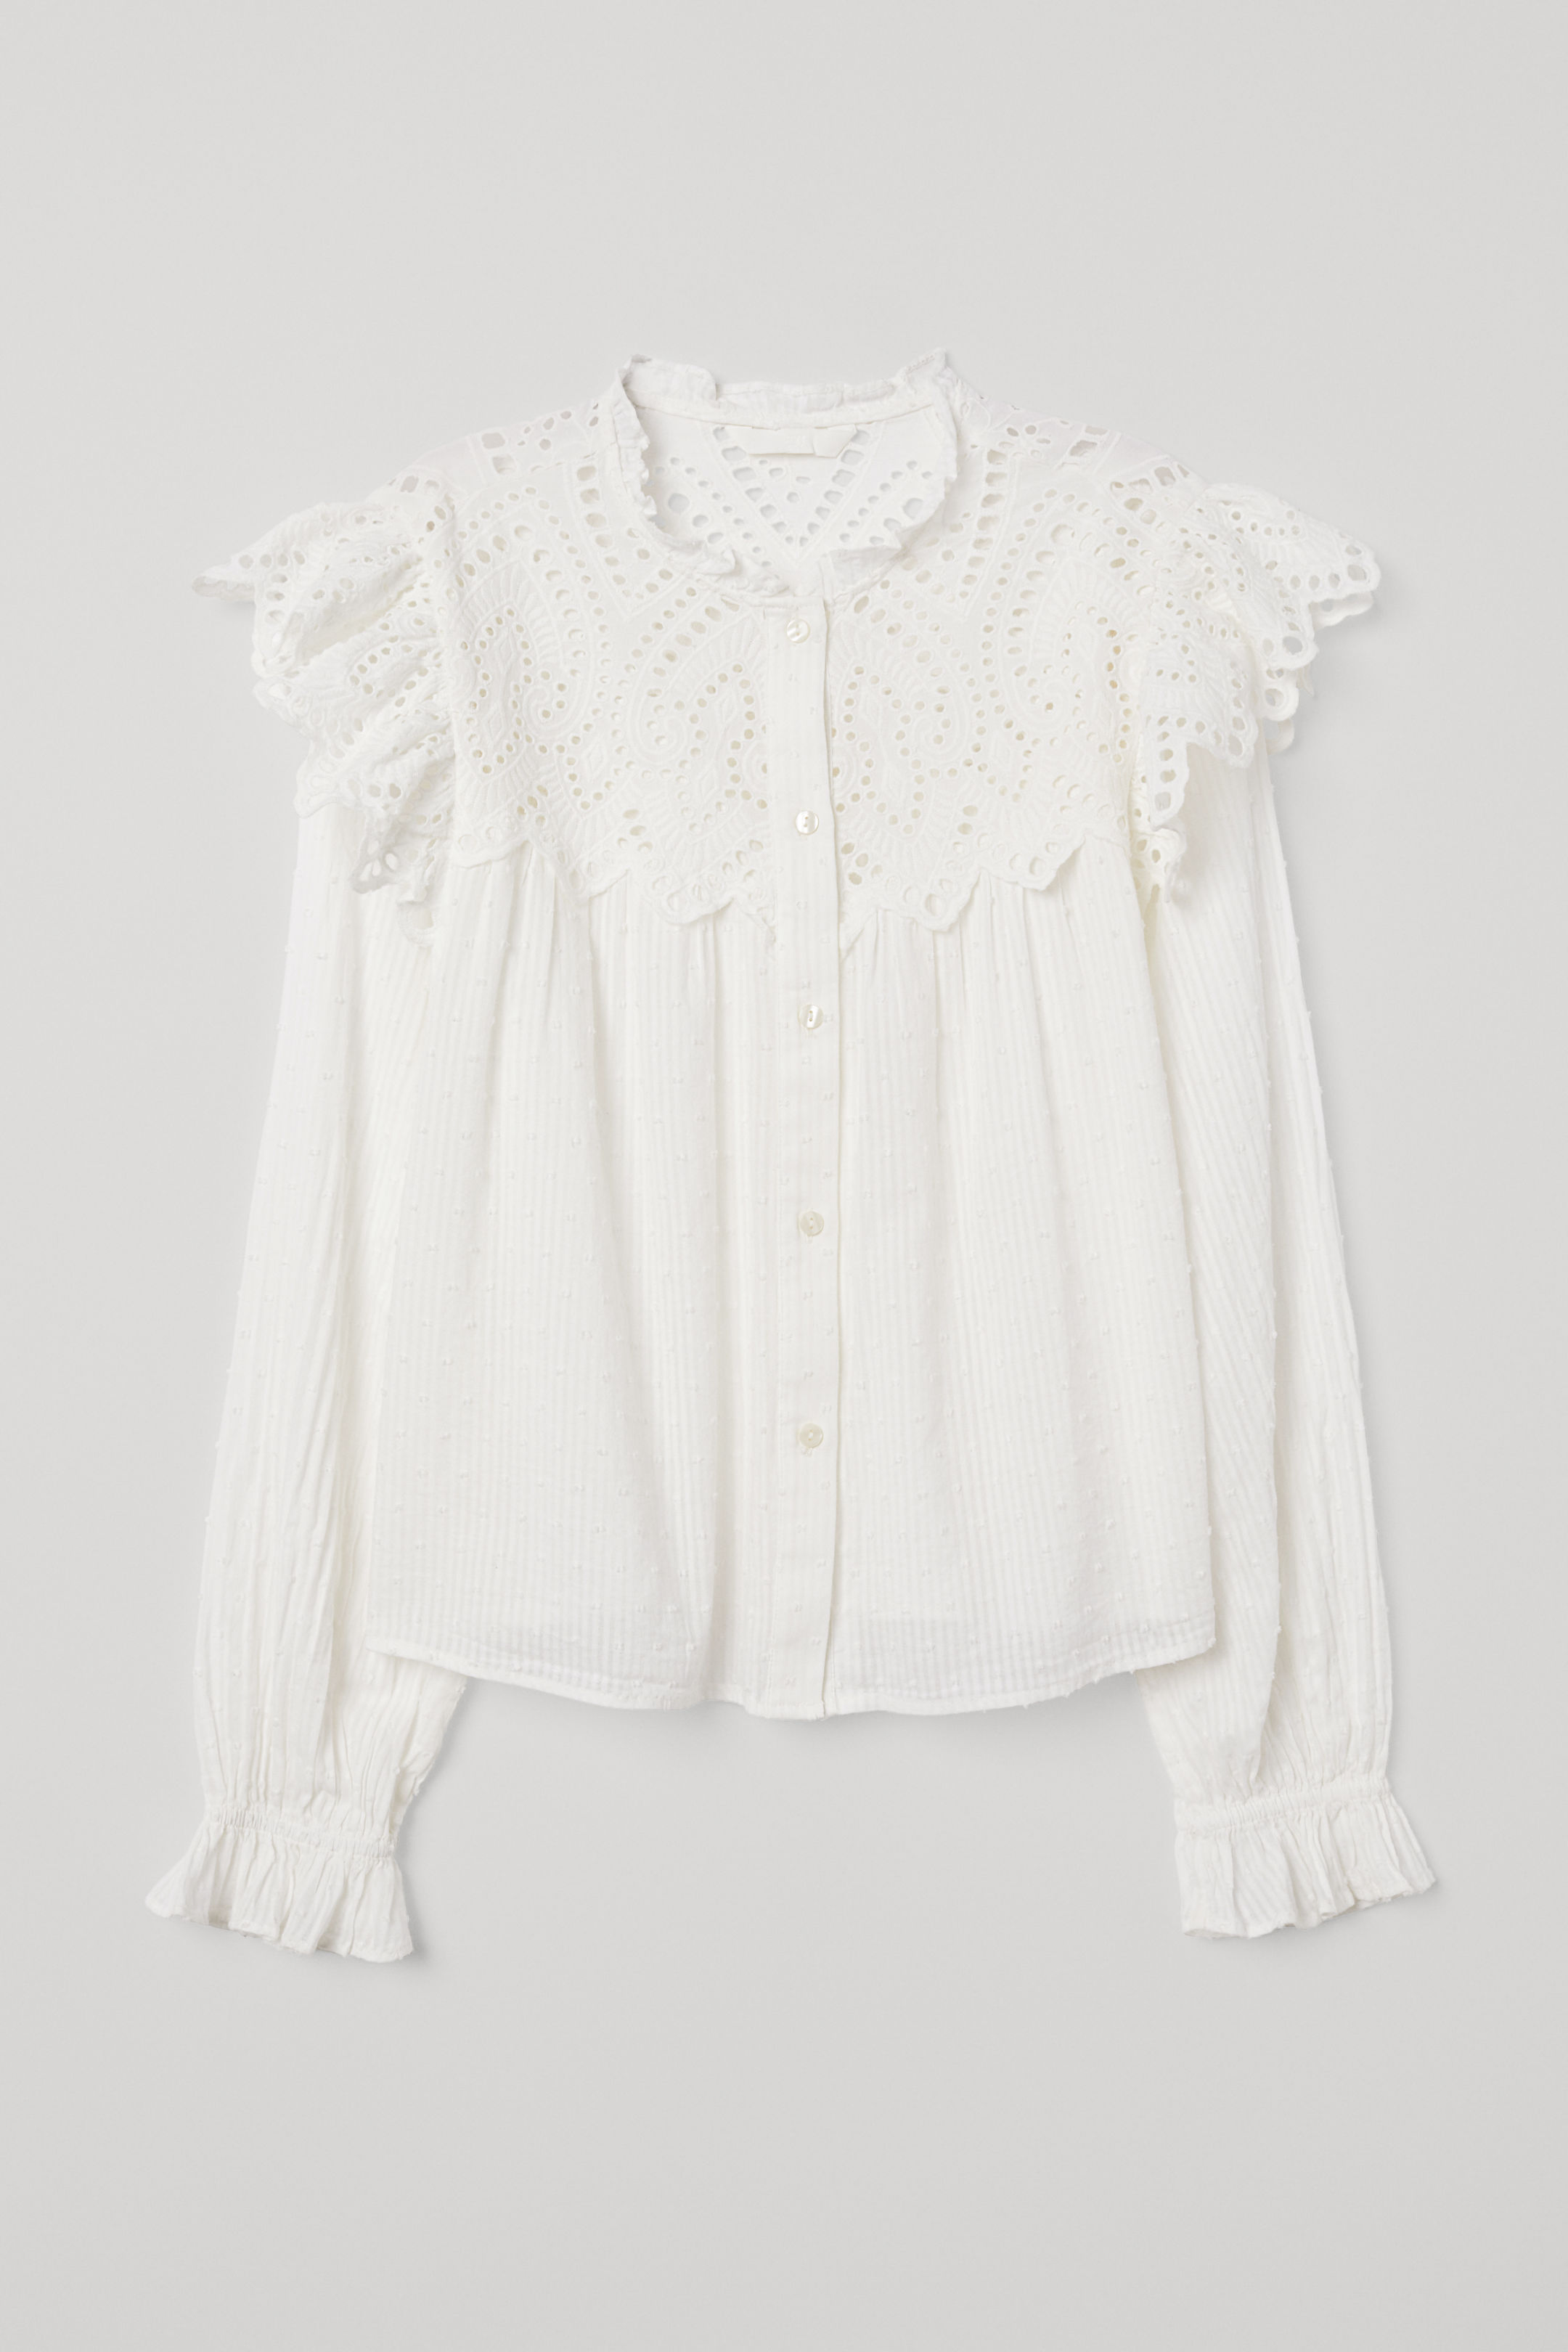 My favorite weekly finds, including this HM Blouse with Eyelet Embroidery | Click through for the details. | glitterinc.com | @glitterinc